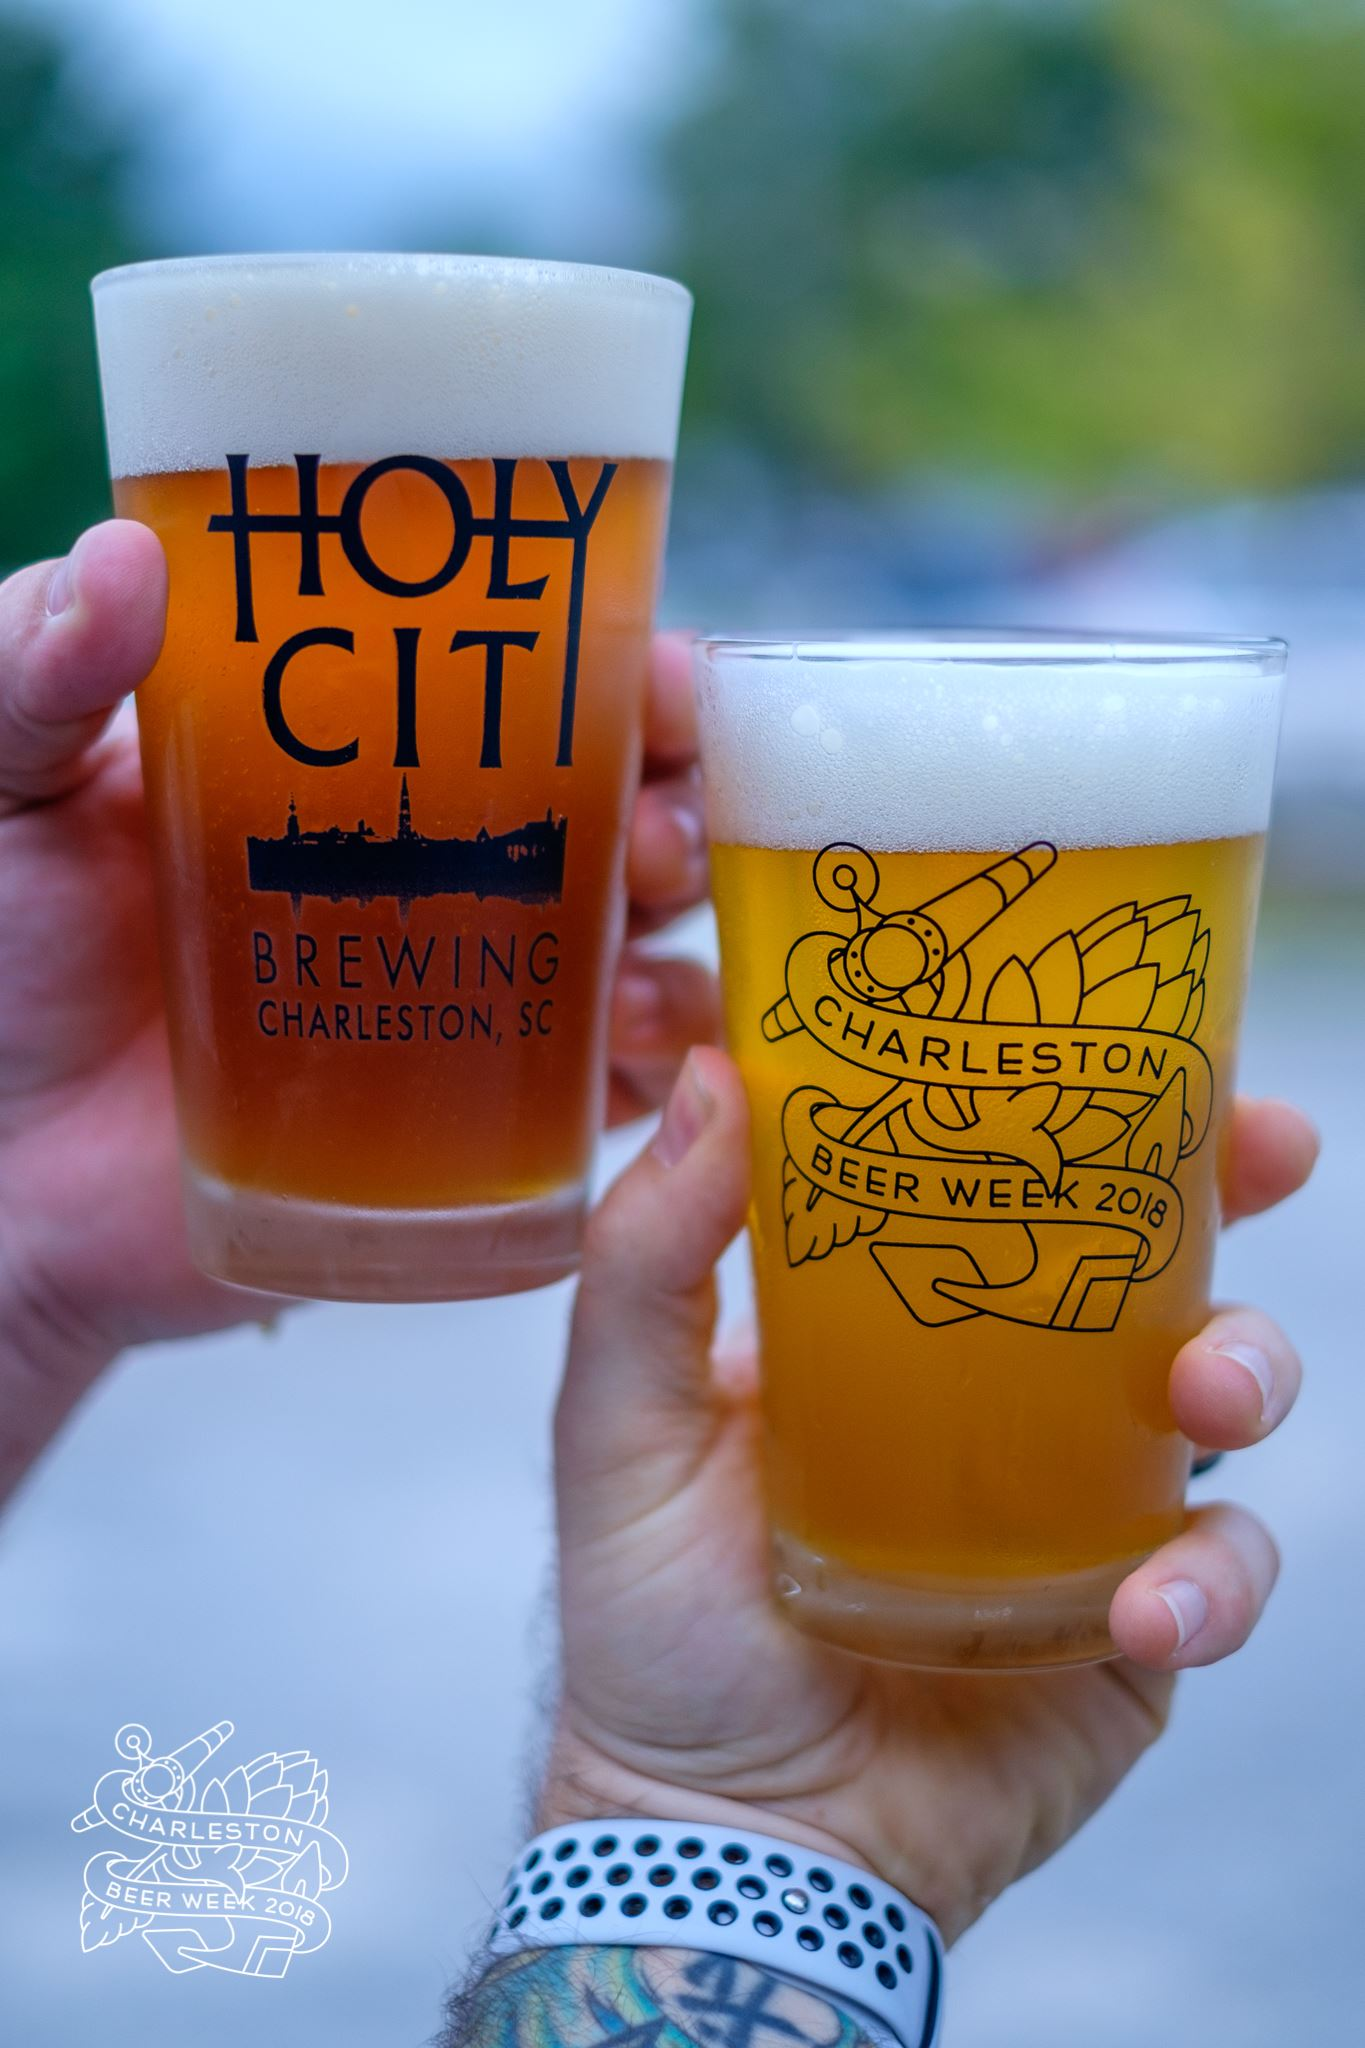 Holy City Brewing and Charleston Beer Week Pint Glasses